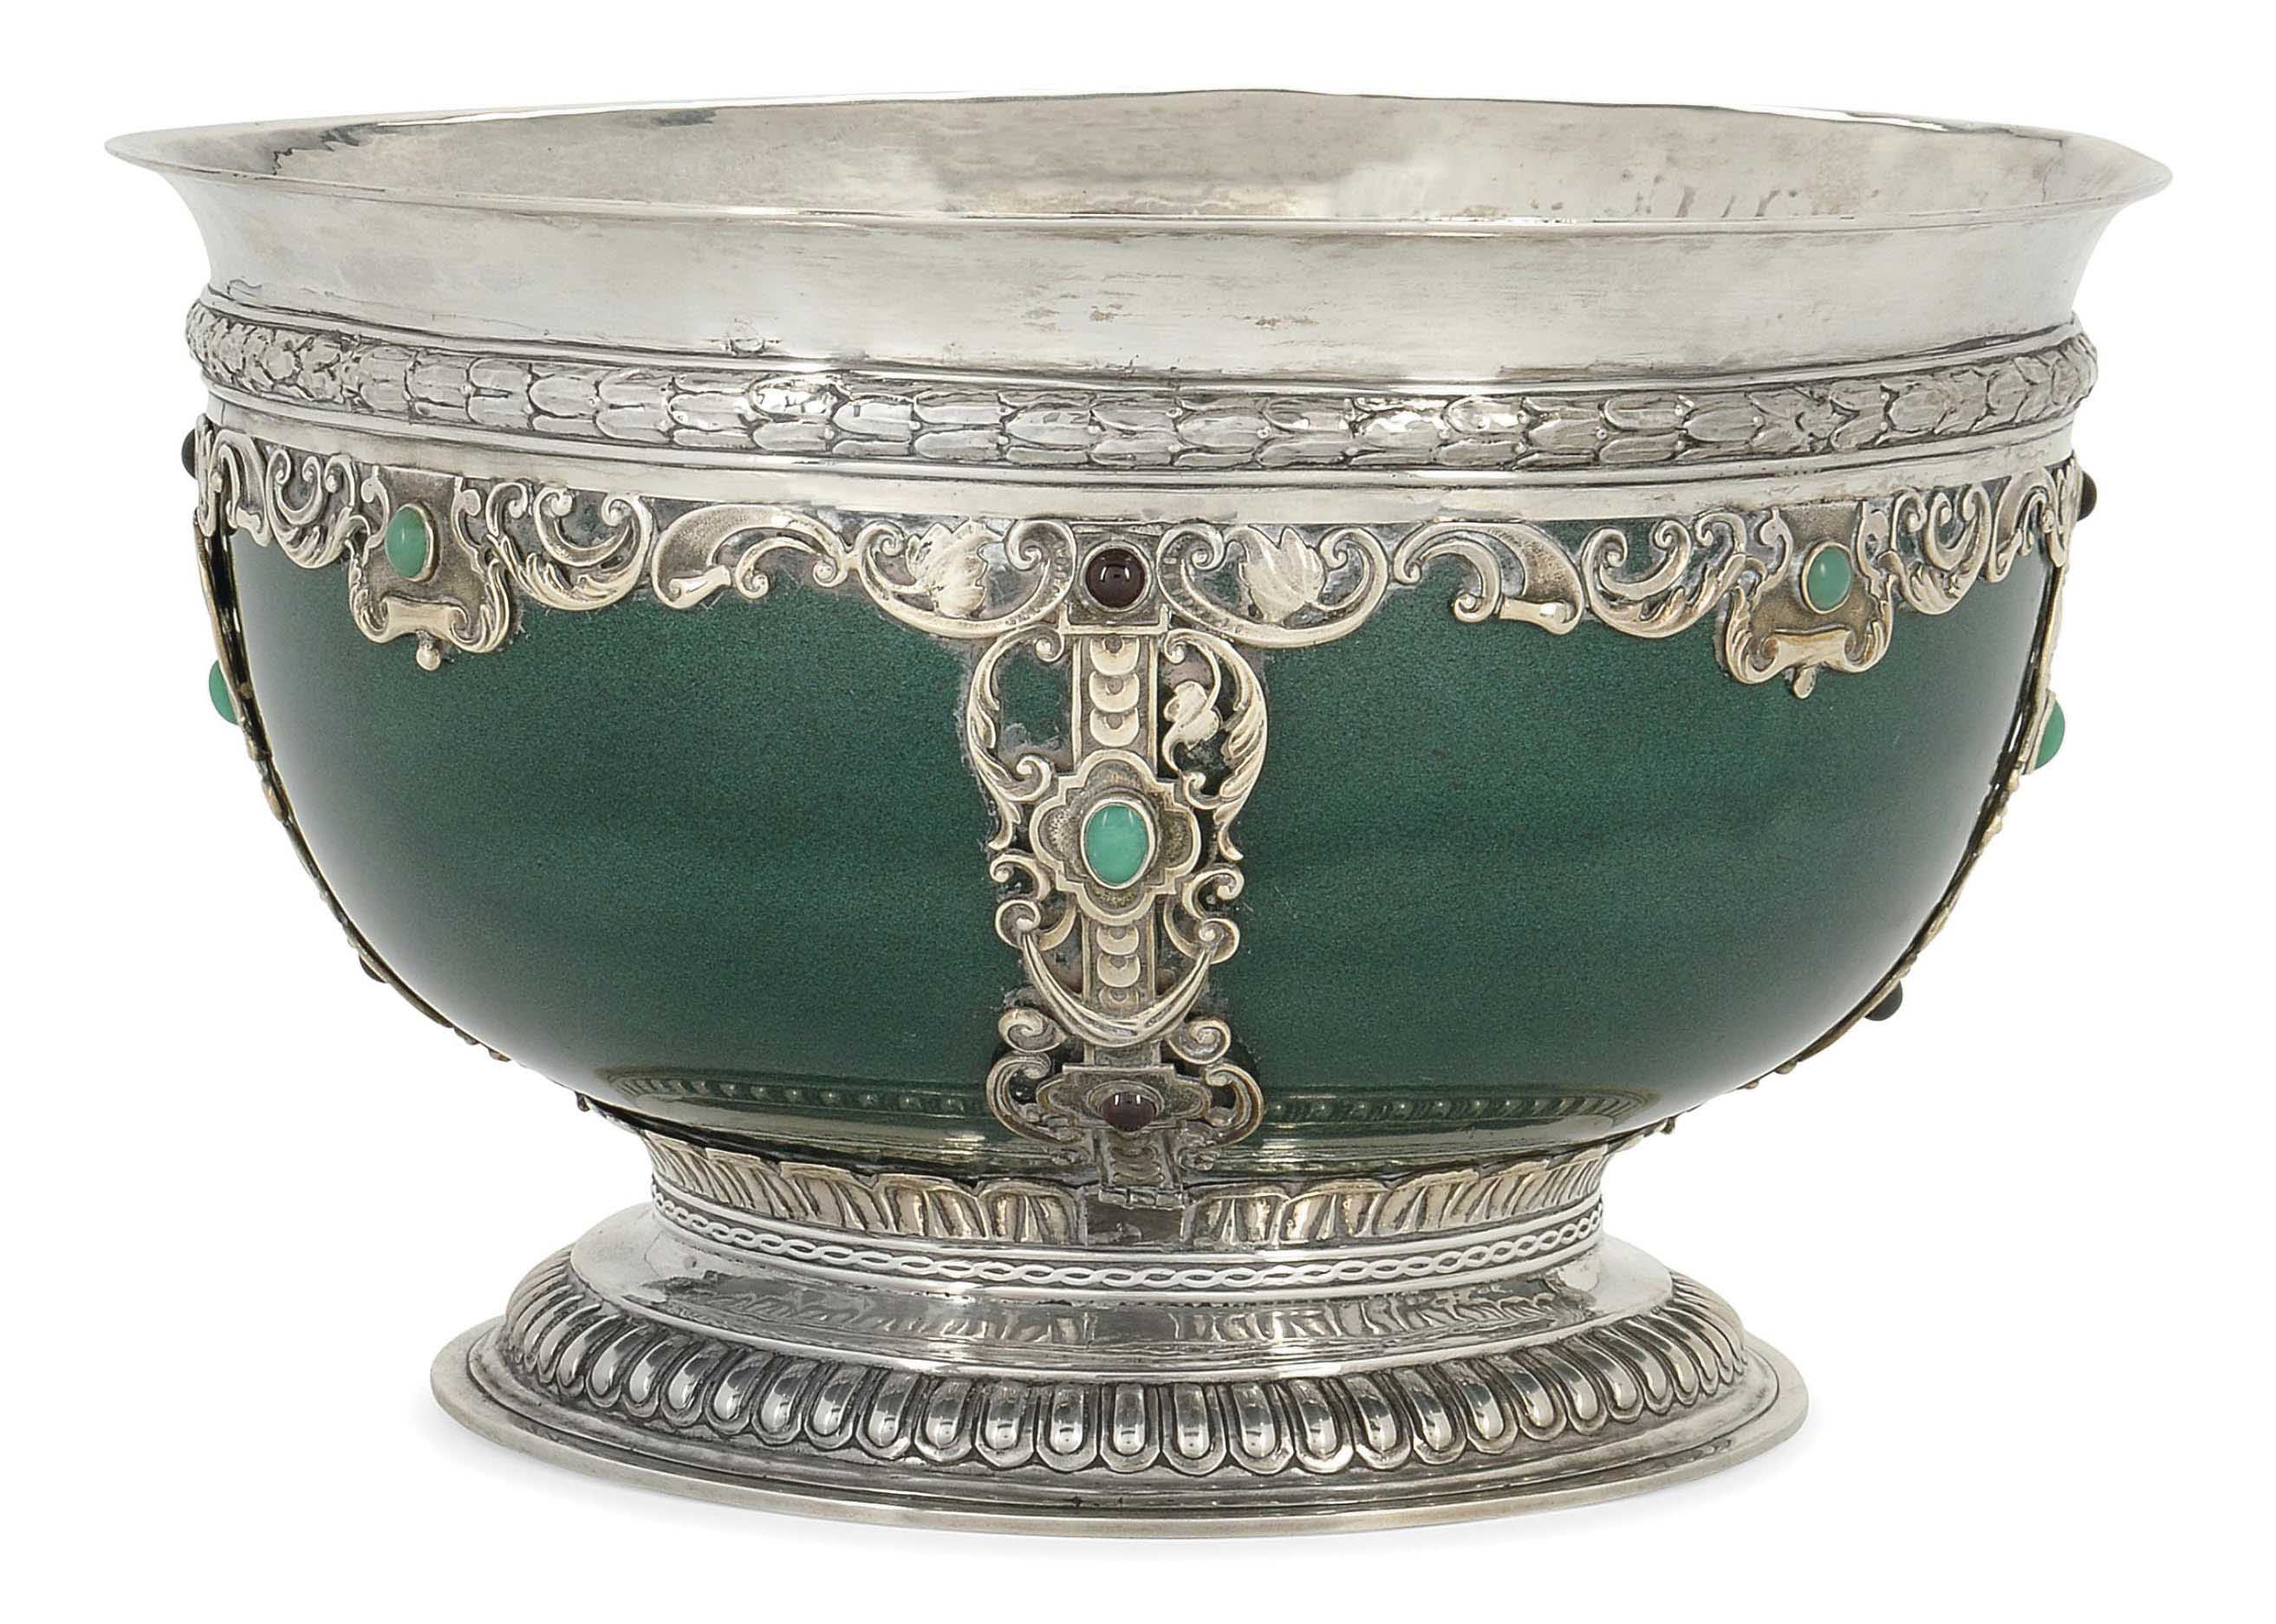 AN EDWARDIAN SILVER-MOUNTED ROYAL DOULTON ROSE BOWL